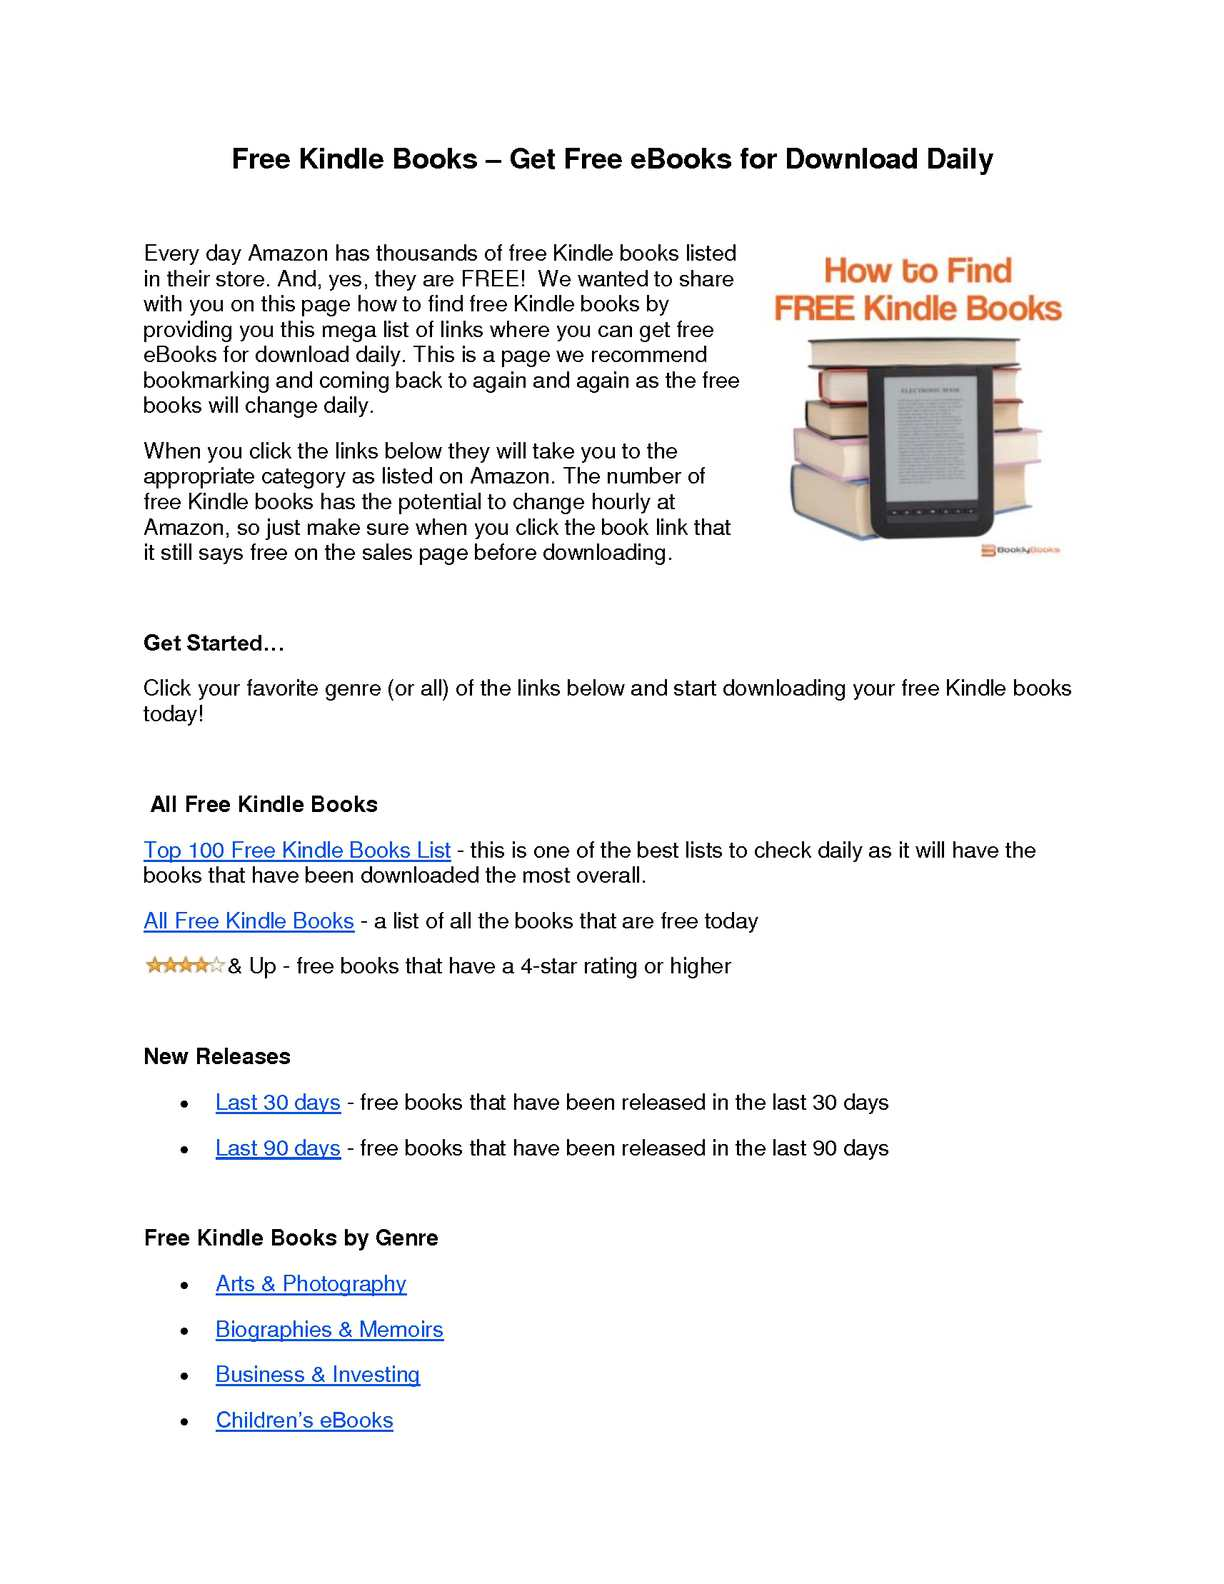 Calaméo - Free Kindle Books – Get Free eBooks for Download Daily